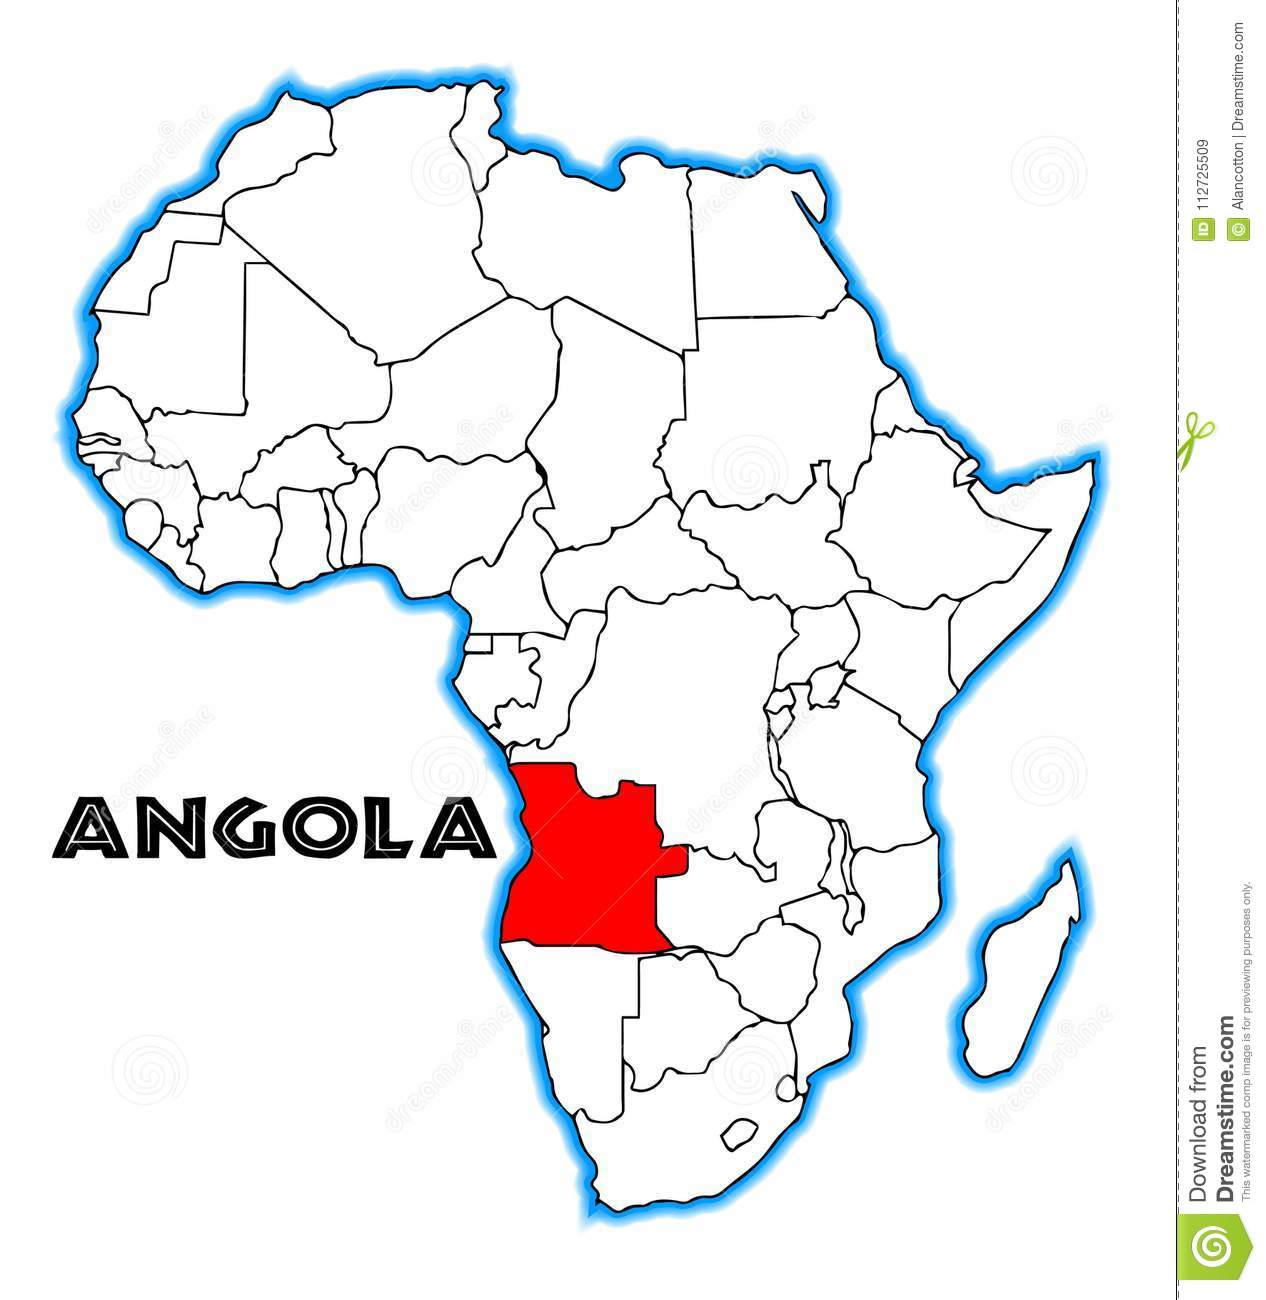 Angola Africa Map stock vector. Illustration of vector   112725509